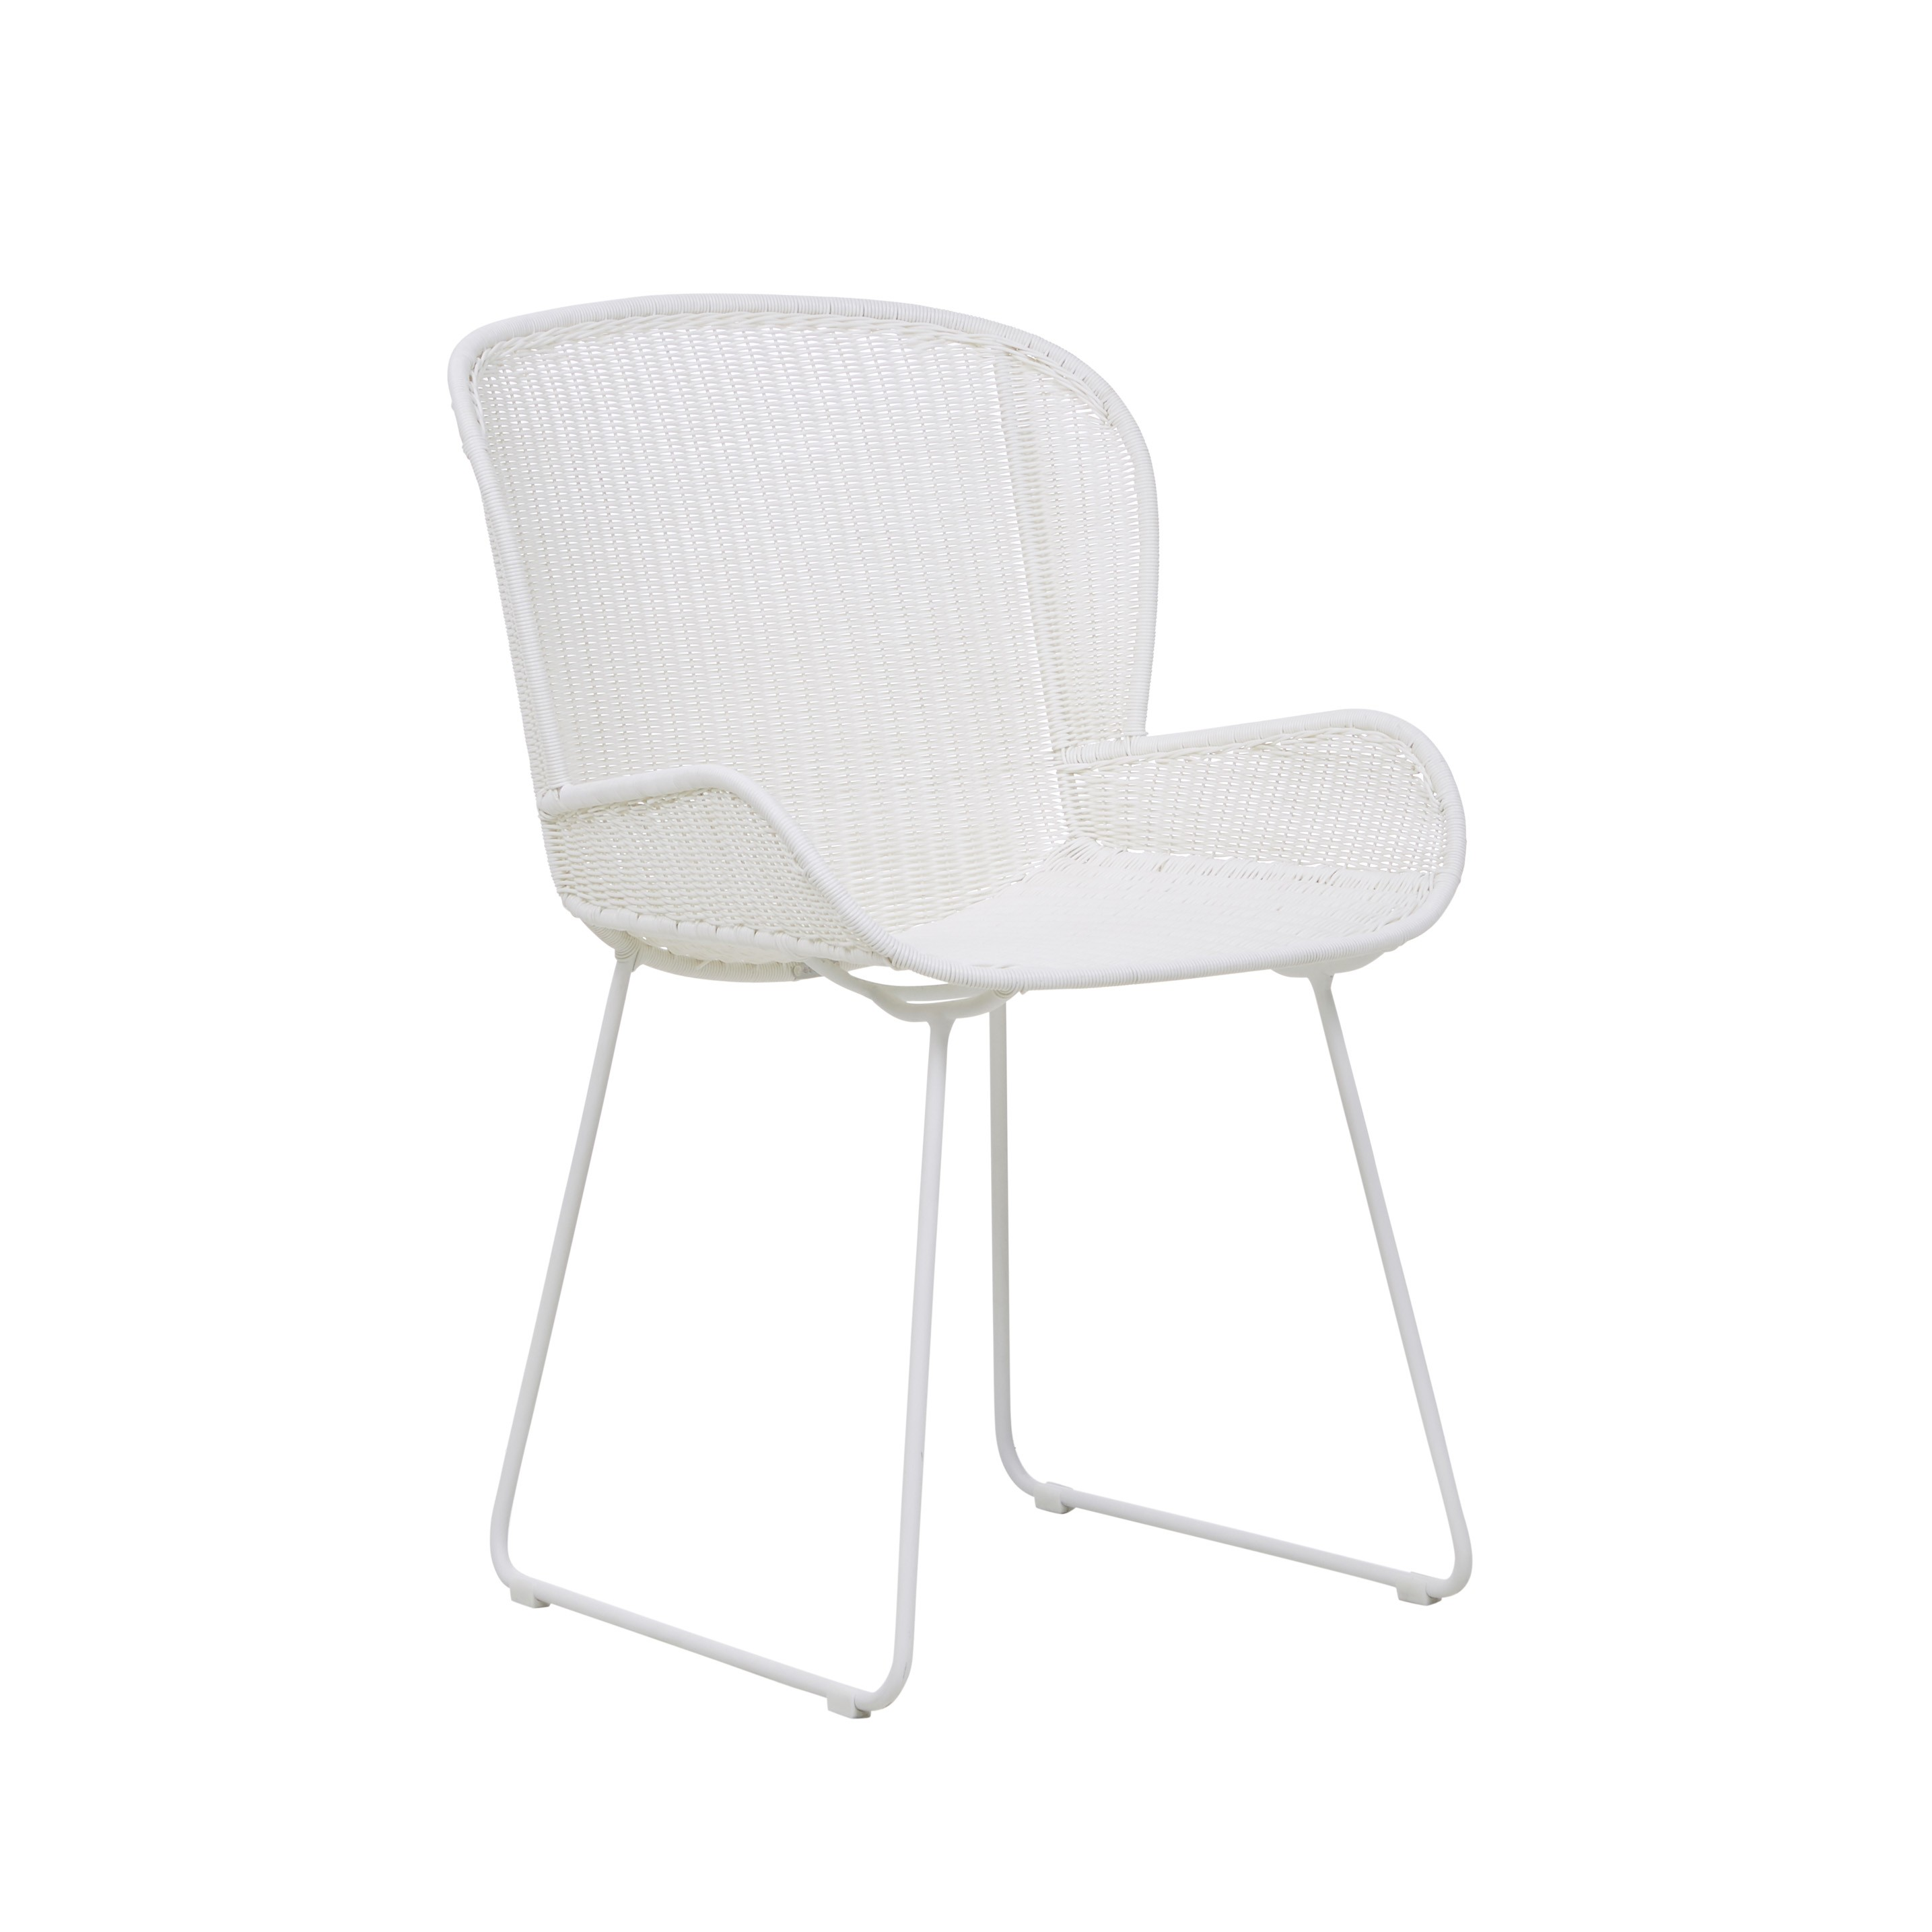 Furniture Hero-Images Dining-Chairs-Benches-and-Stools granada-butterfly-closed-weave-03